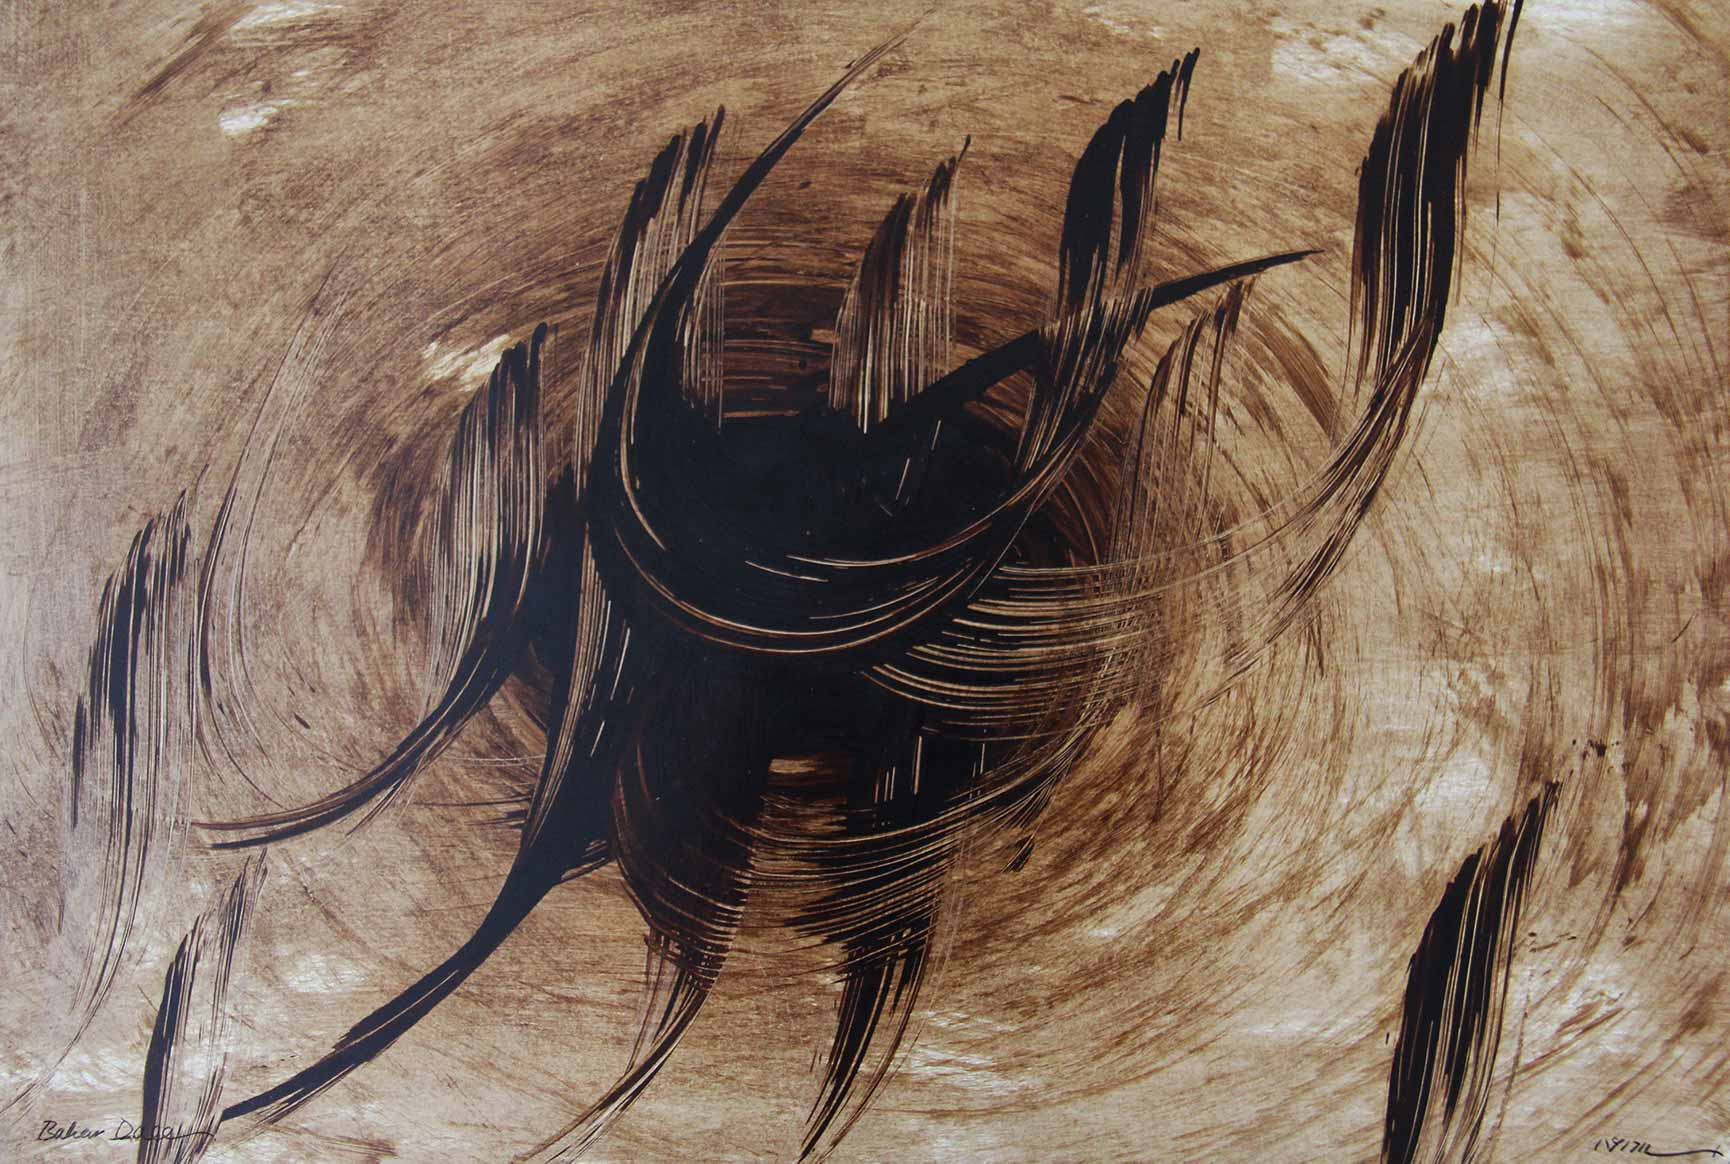 Painting-Calligraphy by Bahar Daee